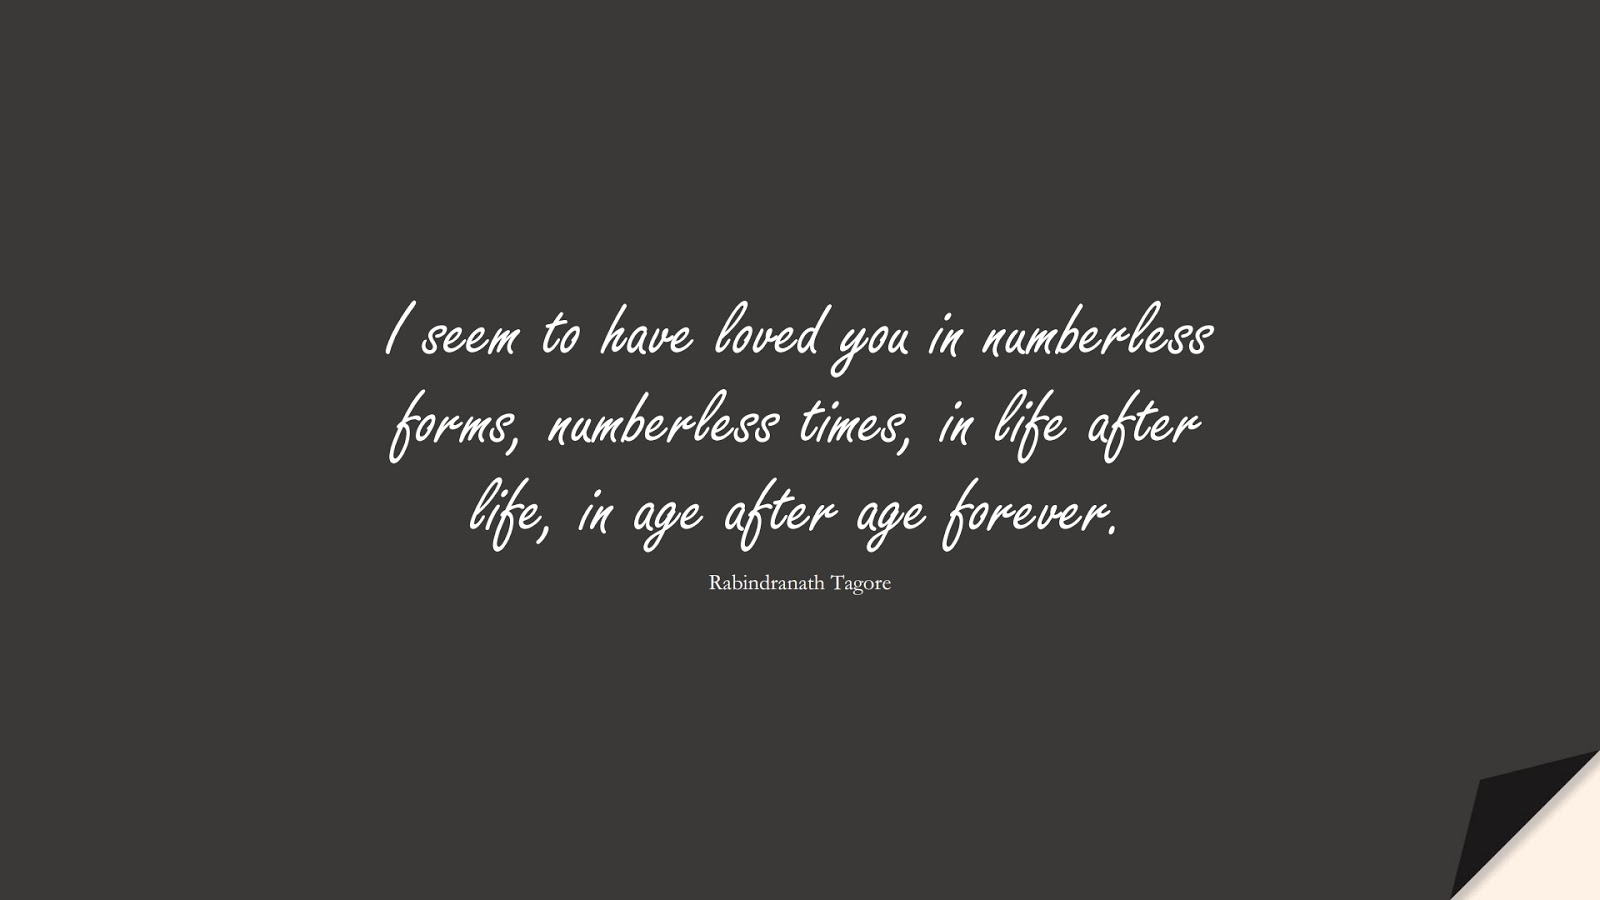 I seem to have loved you in numberless forms, numberless times, in life after life, in age after age forever. (Rabindranath Tagore);  #LoveQuotes